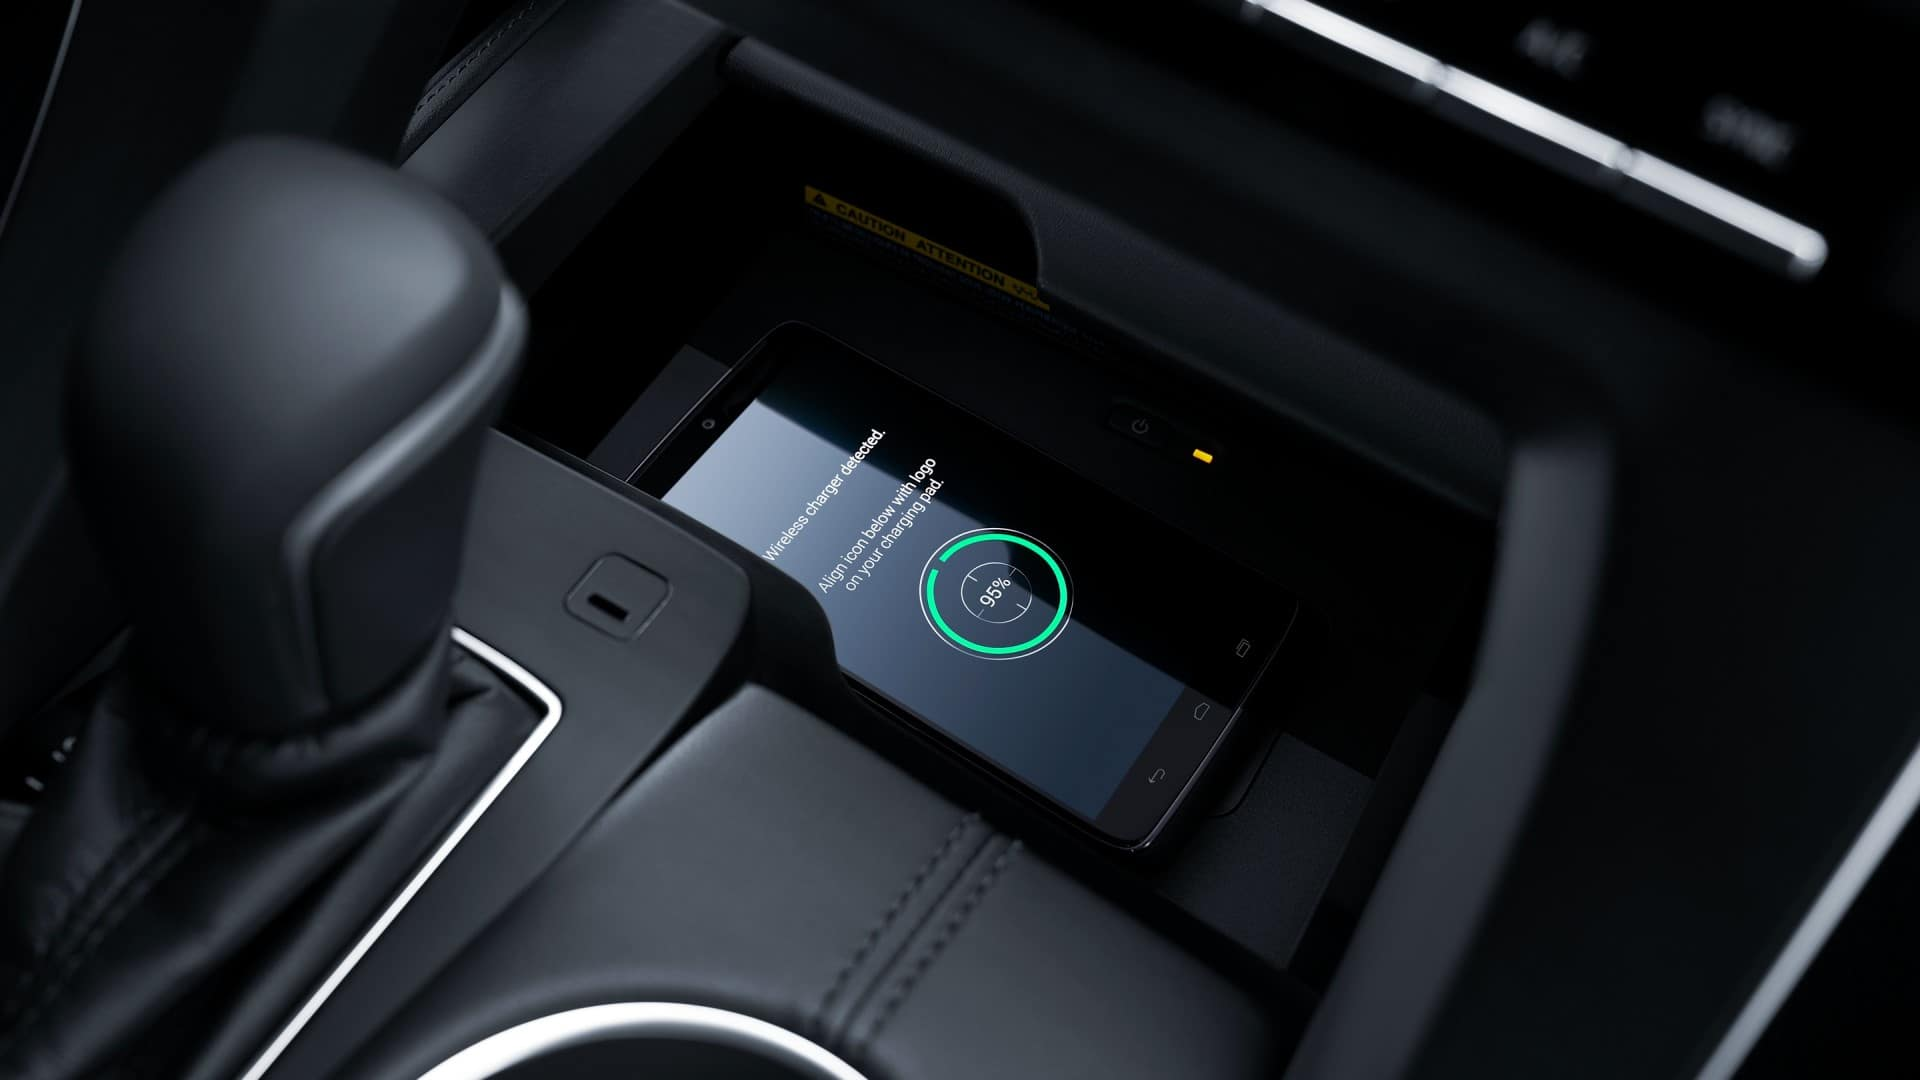 Toyota_Avalon_Interior_Phone_Quick_Charger